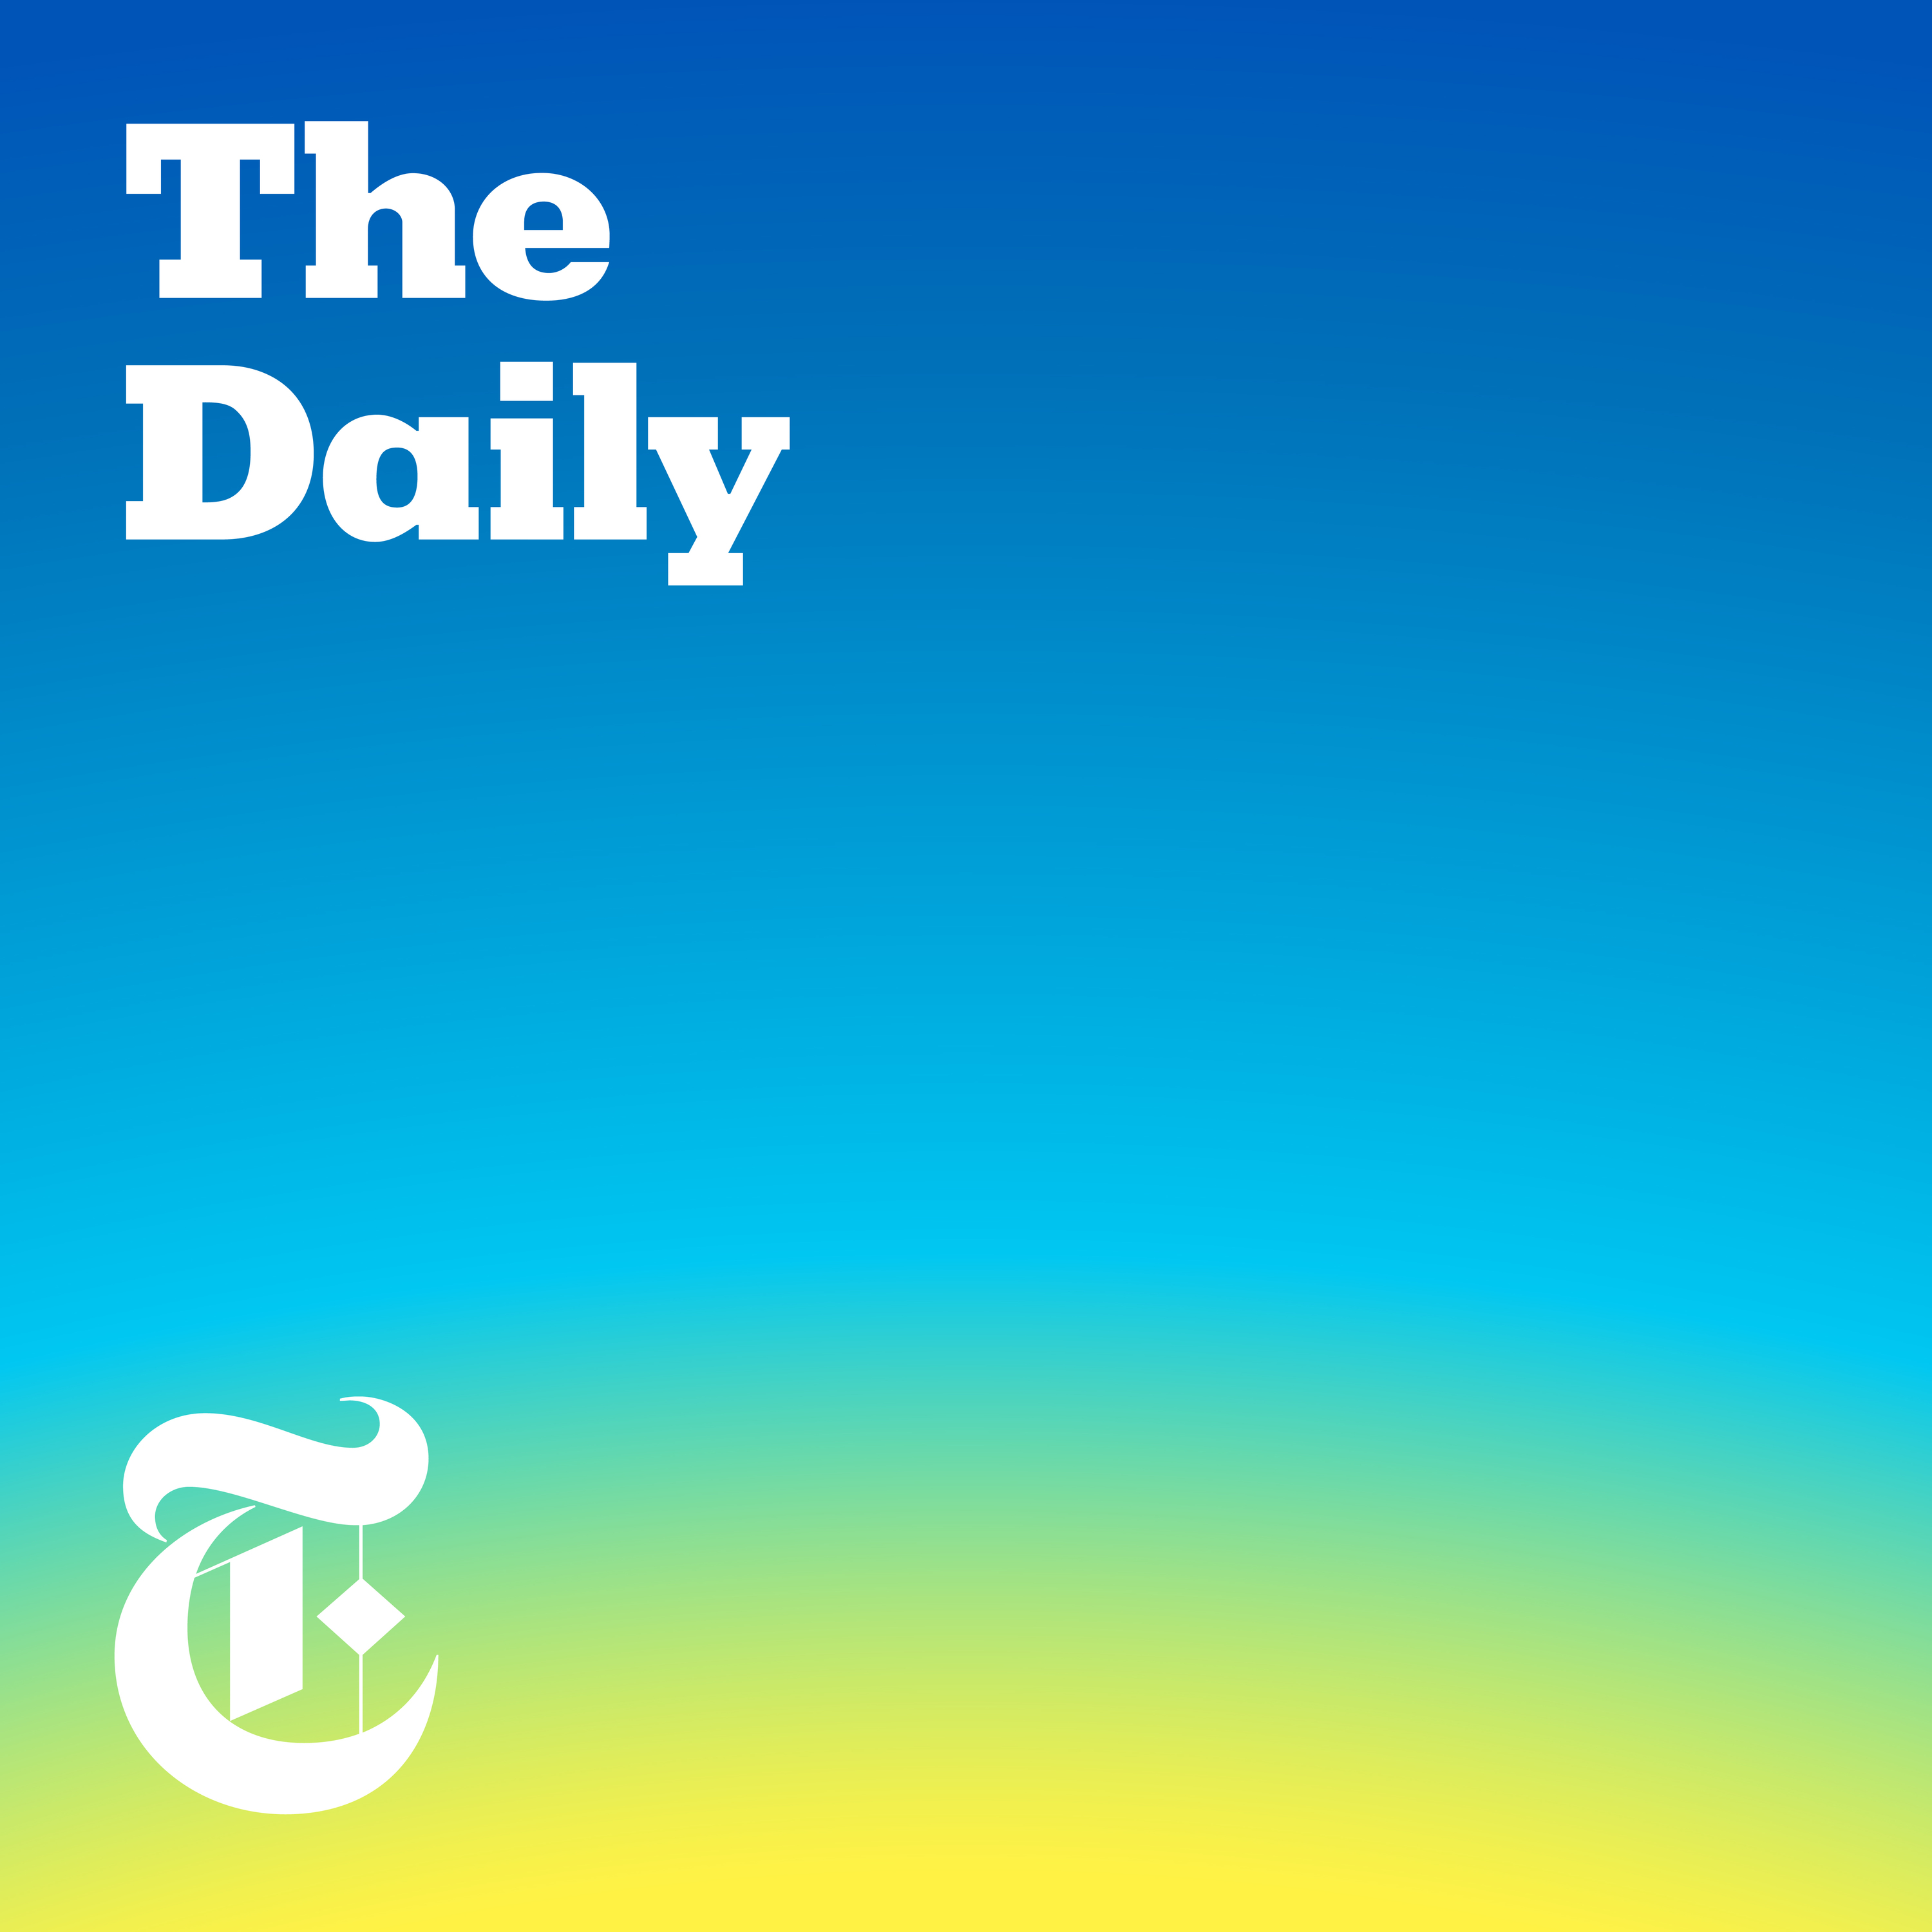 4. The Daily